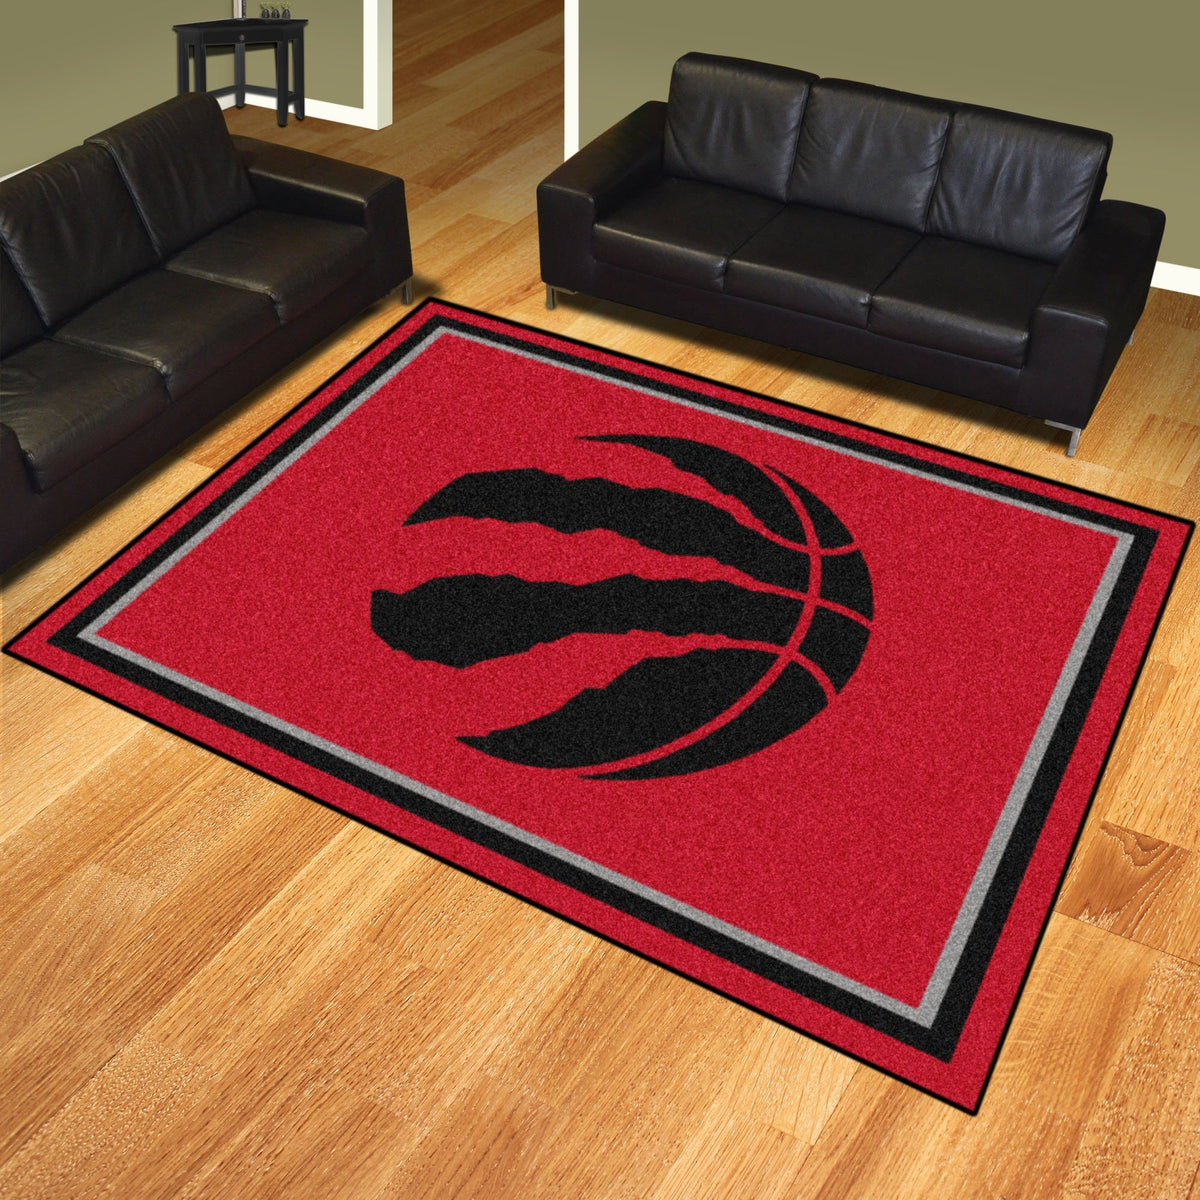 NBA - 8' x 10' Rug NBA Mats, Plush Rugs, 8x10 Rug, NBA, Home Fan Mats Toronto Raptors